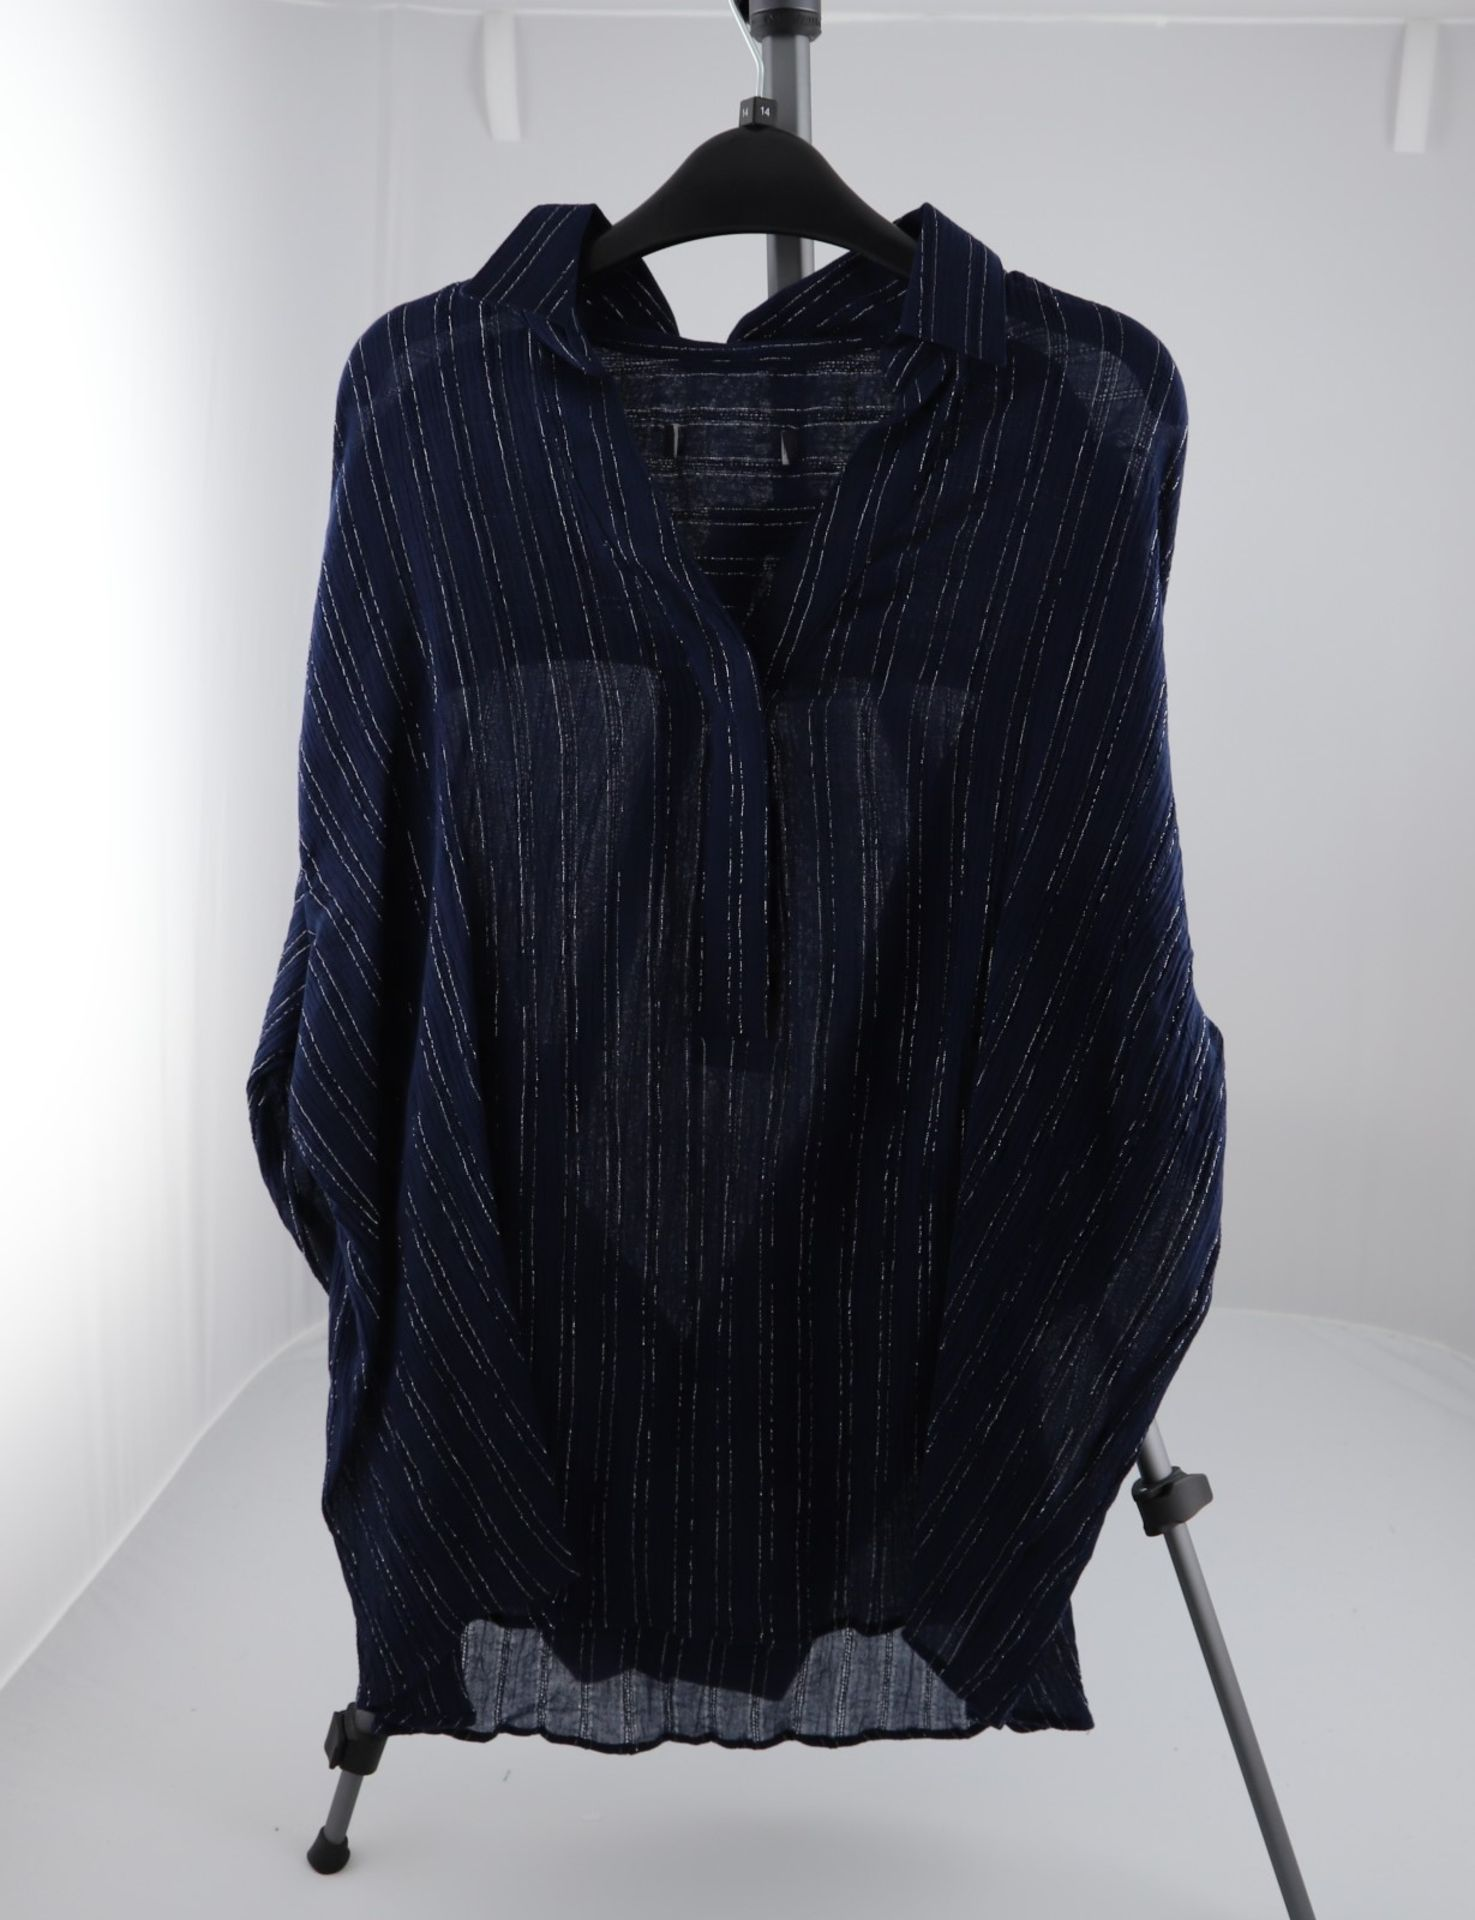 1 x mixed pallet = 274 items of Grade A M&S Womenswear Clothing. Total RRP £7802.50 - Image 8 of 13